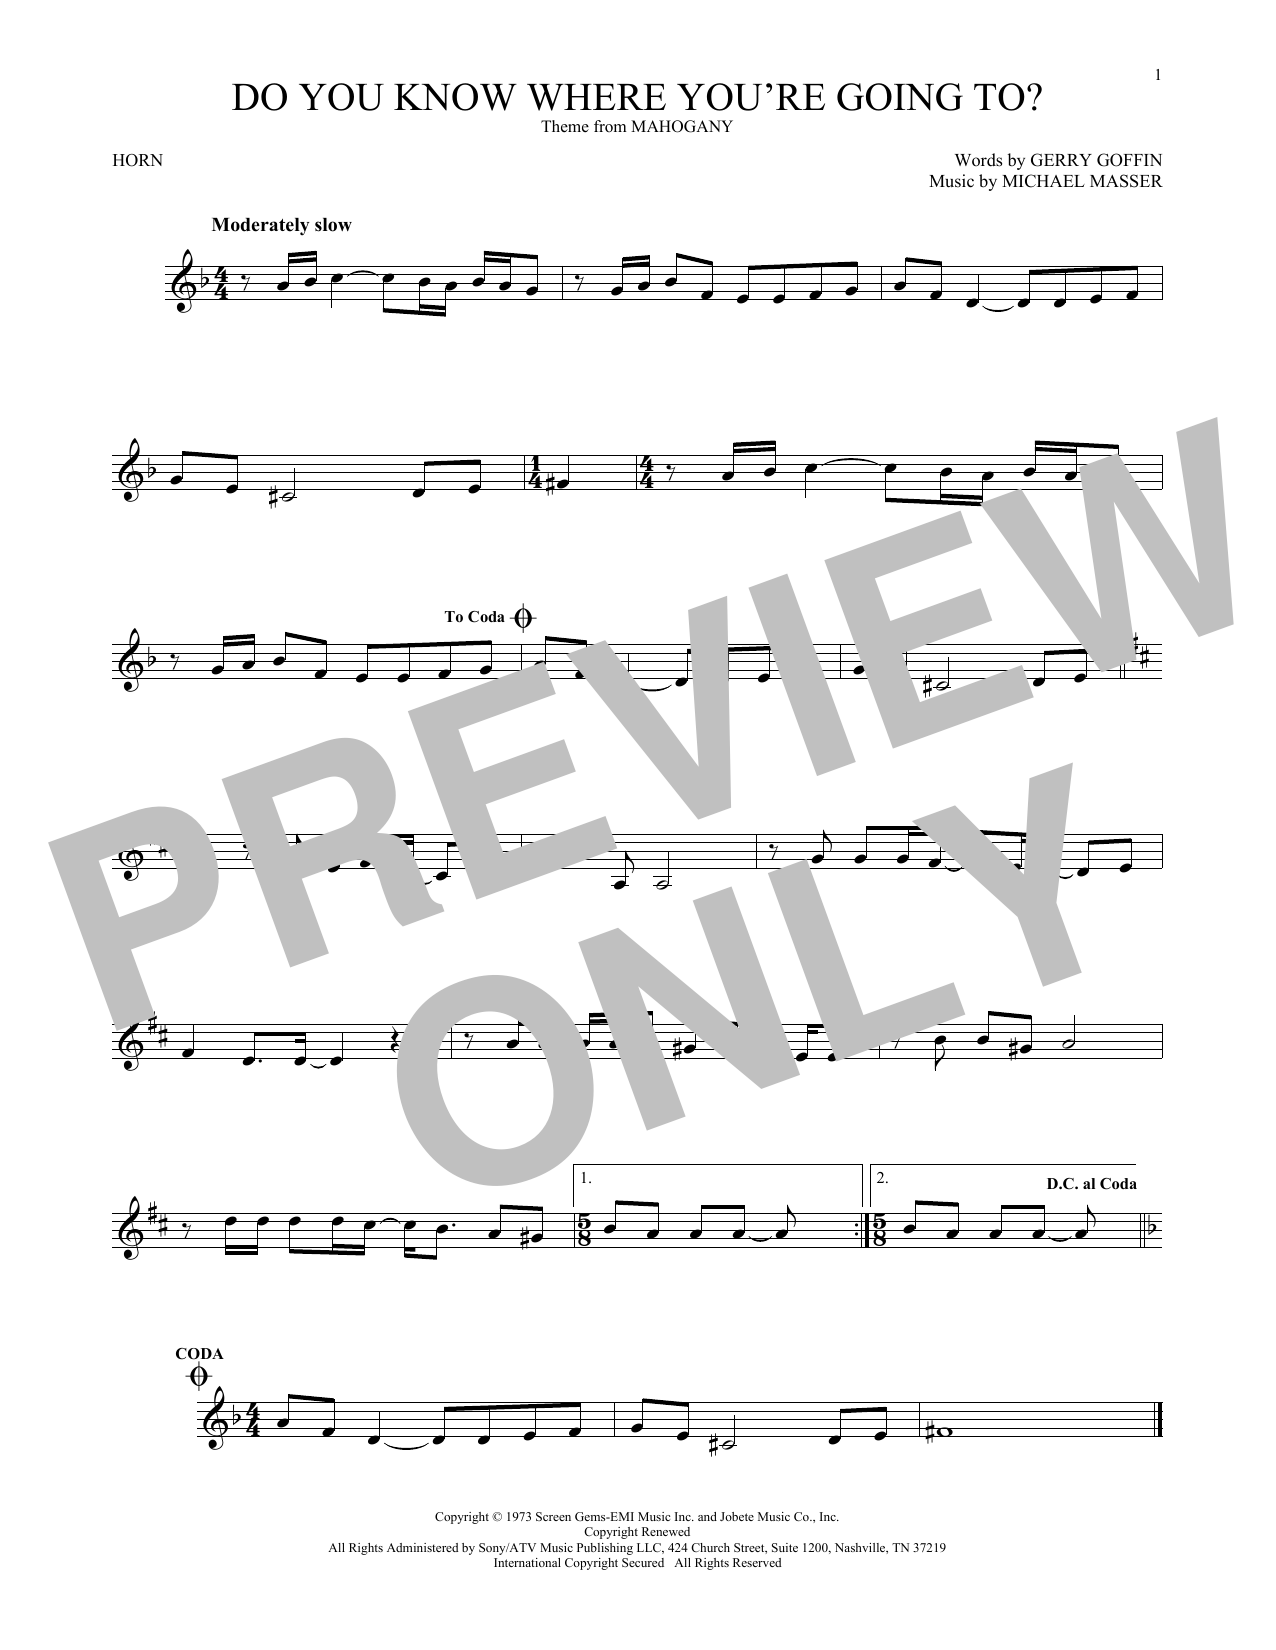 Do You Know Where You're Going To? (French Horn Solo)